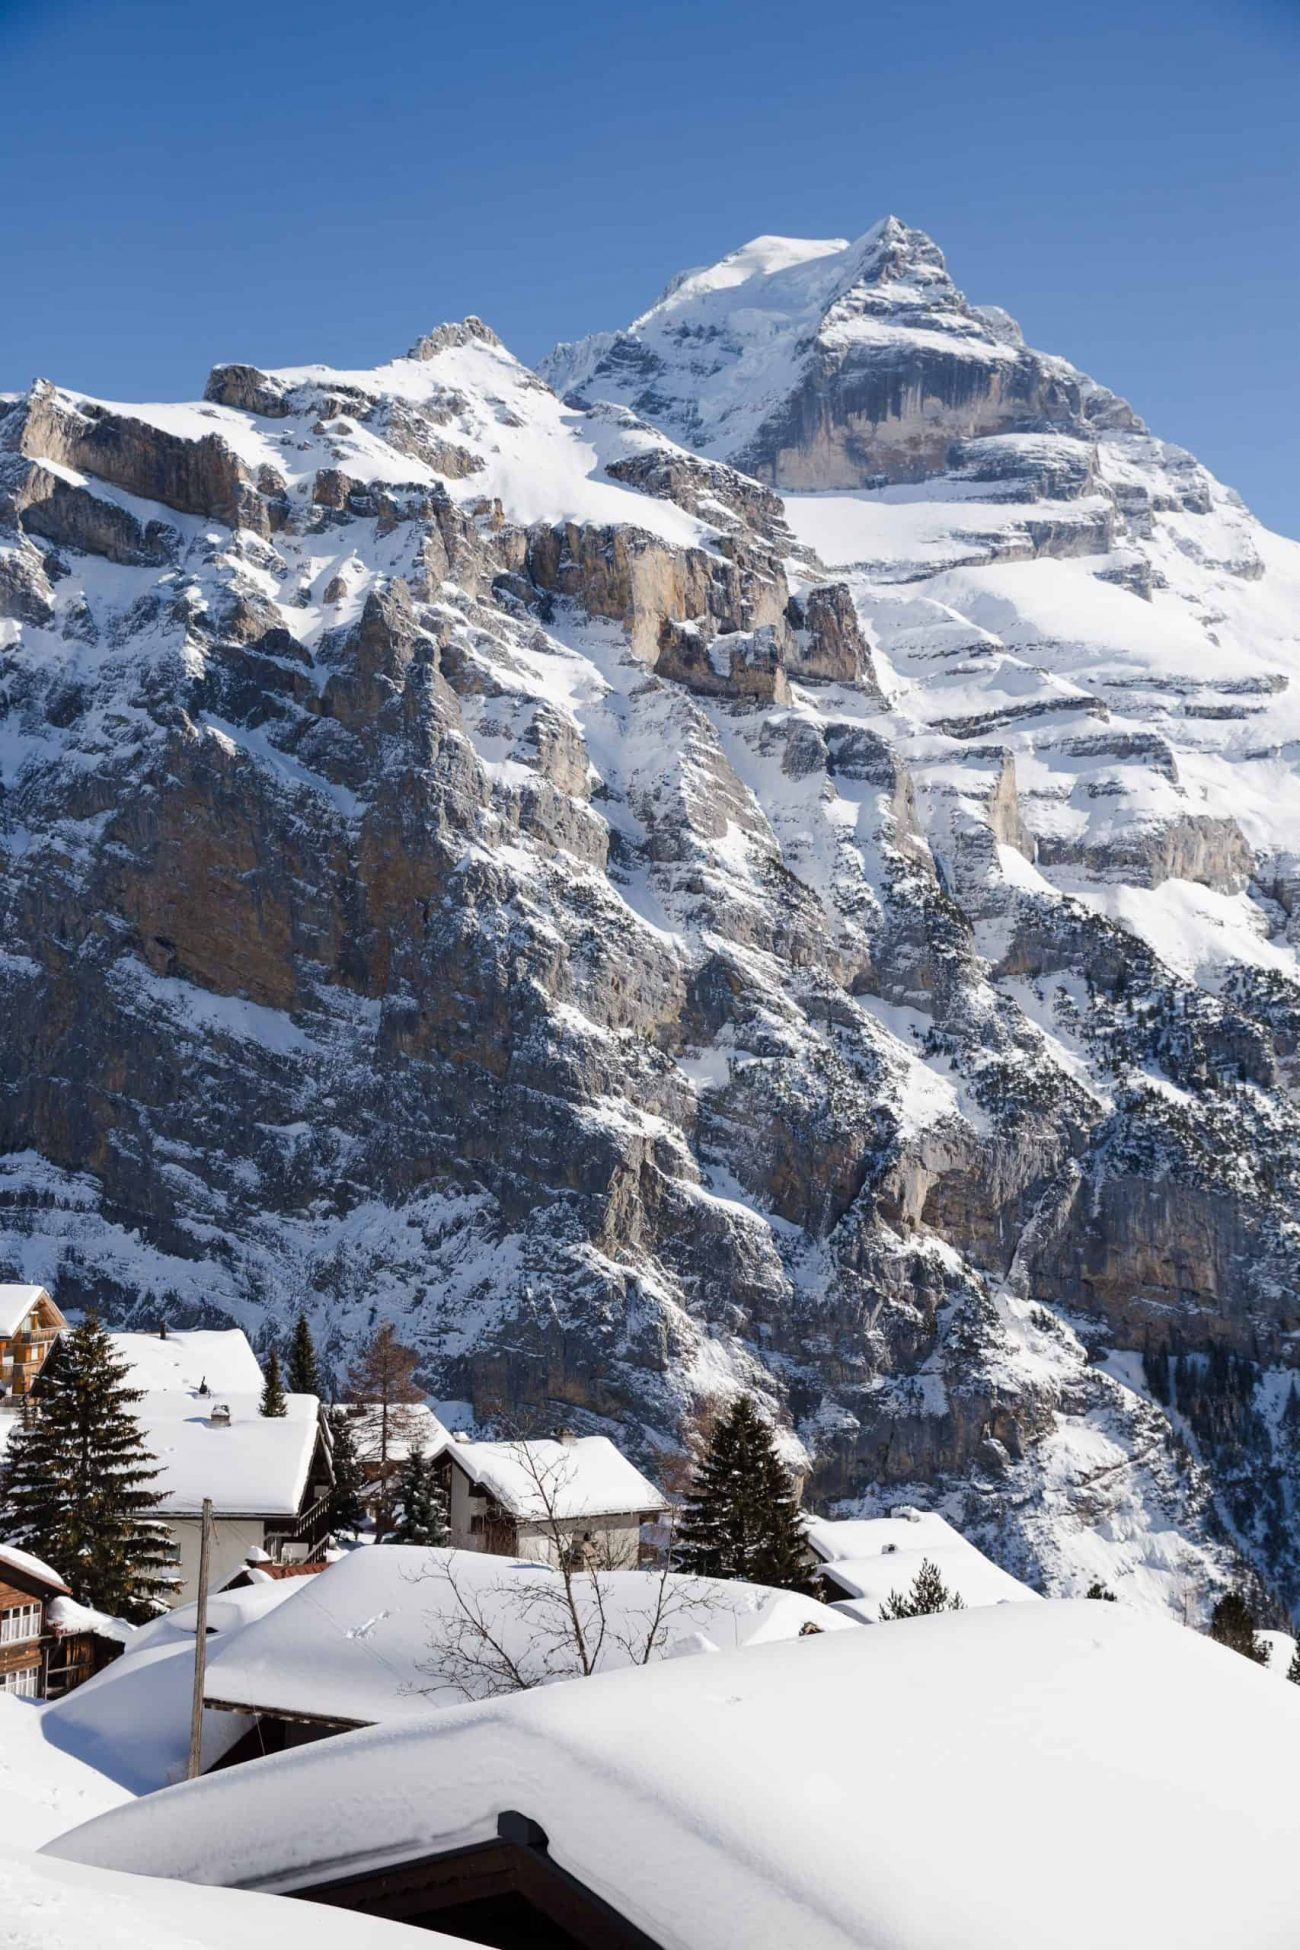 Mürren, Switzerland is a ski town in the Swiss Alps. This Swiss Alps town was one of my favorite destinations of 2019, and a great place to travel in 2020.